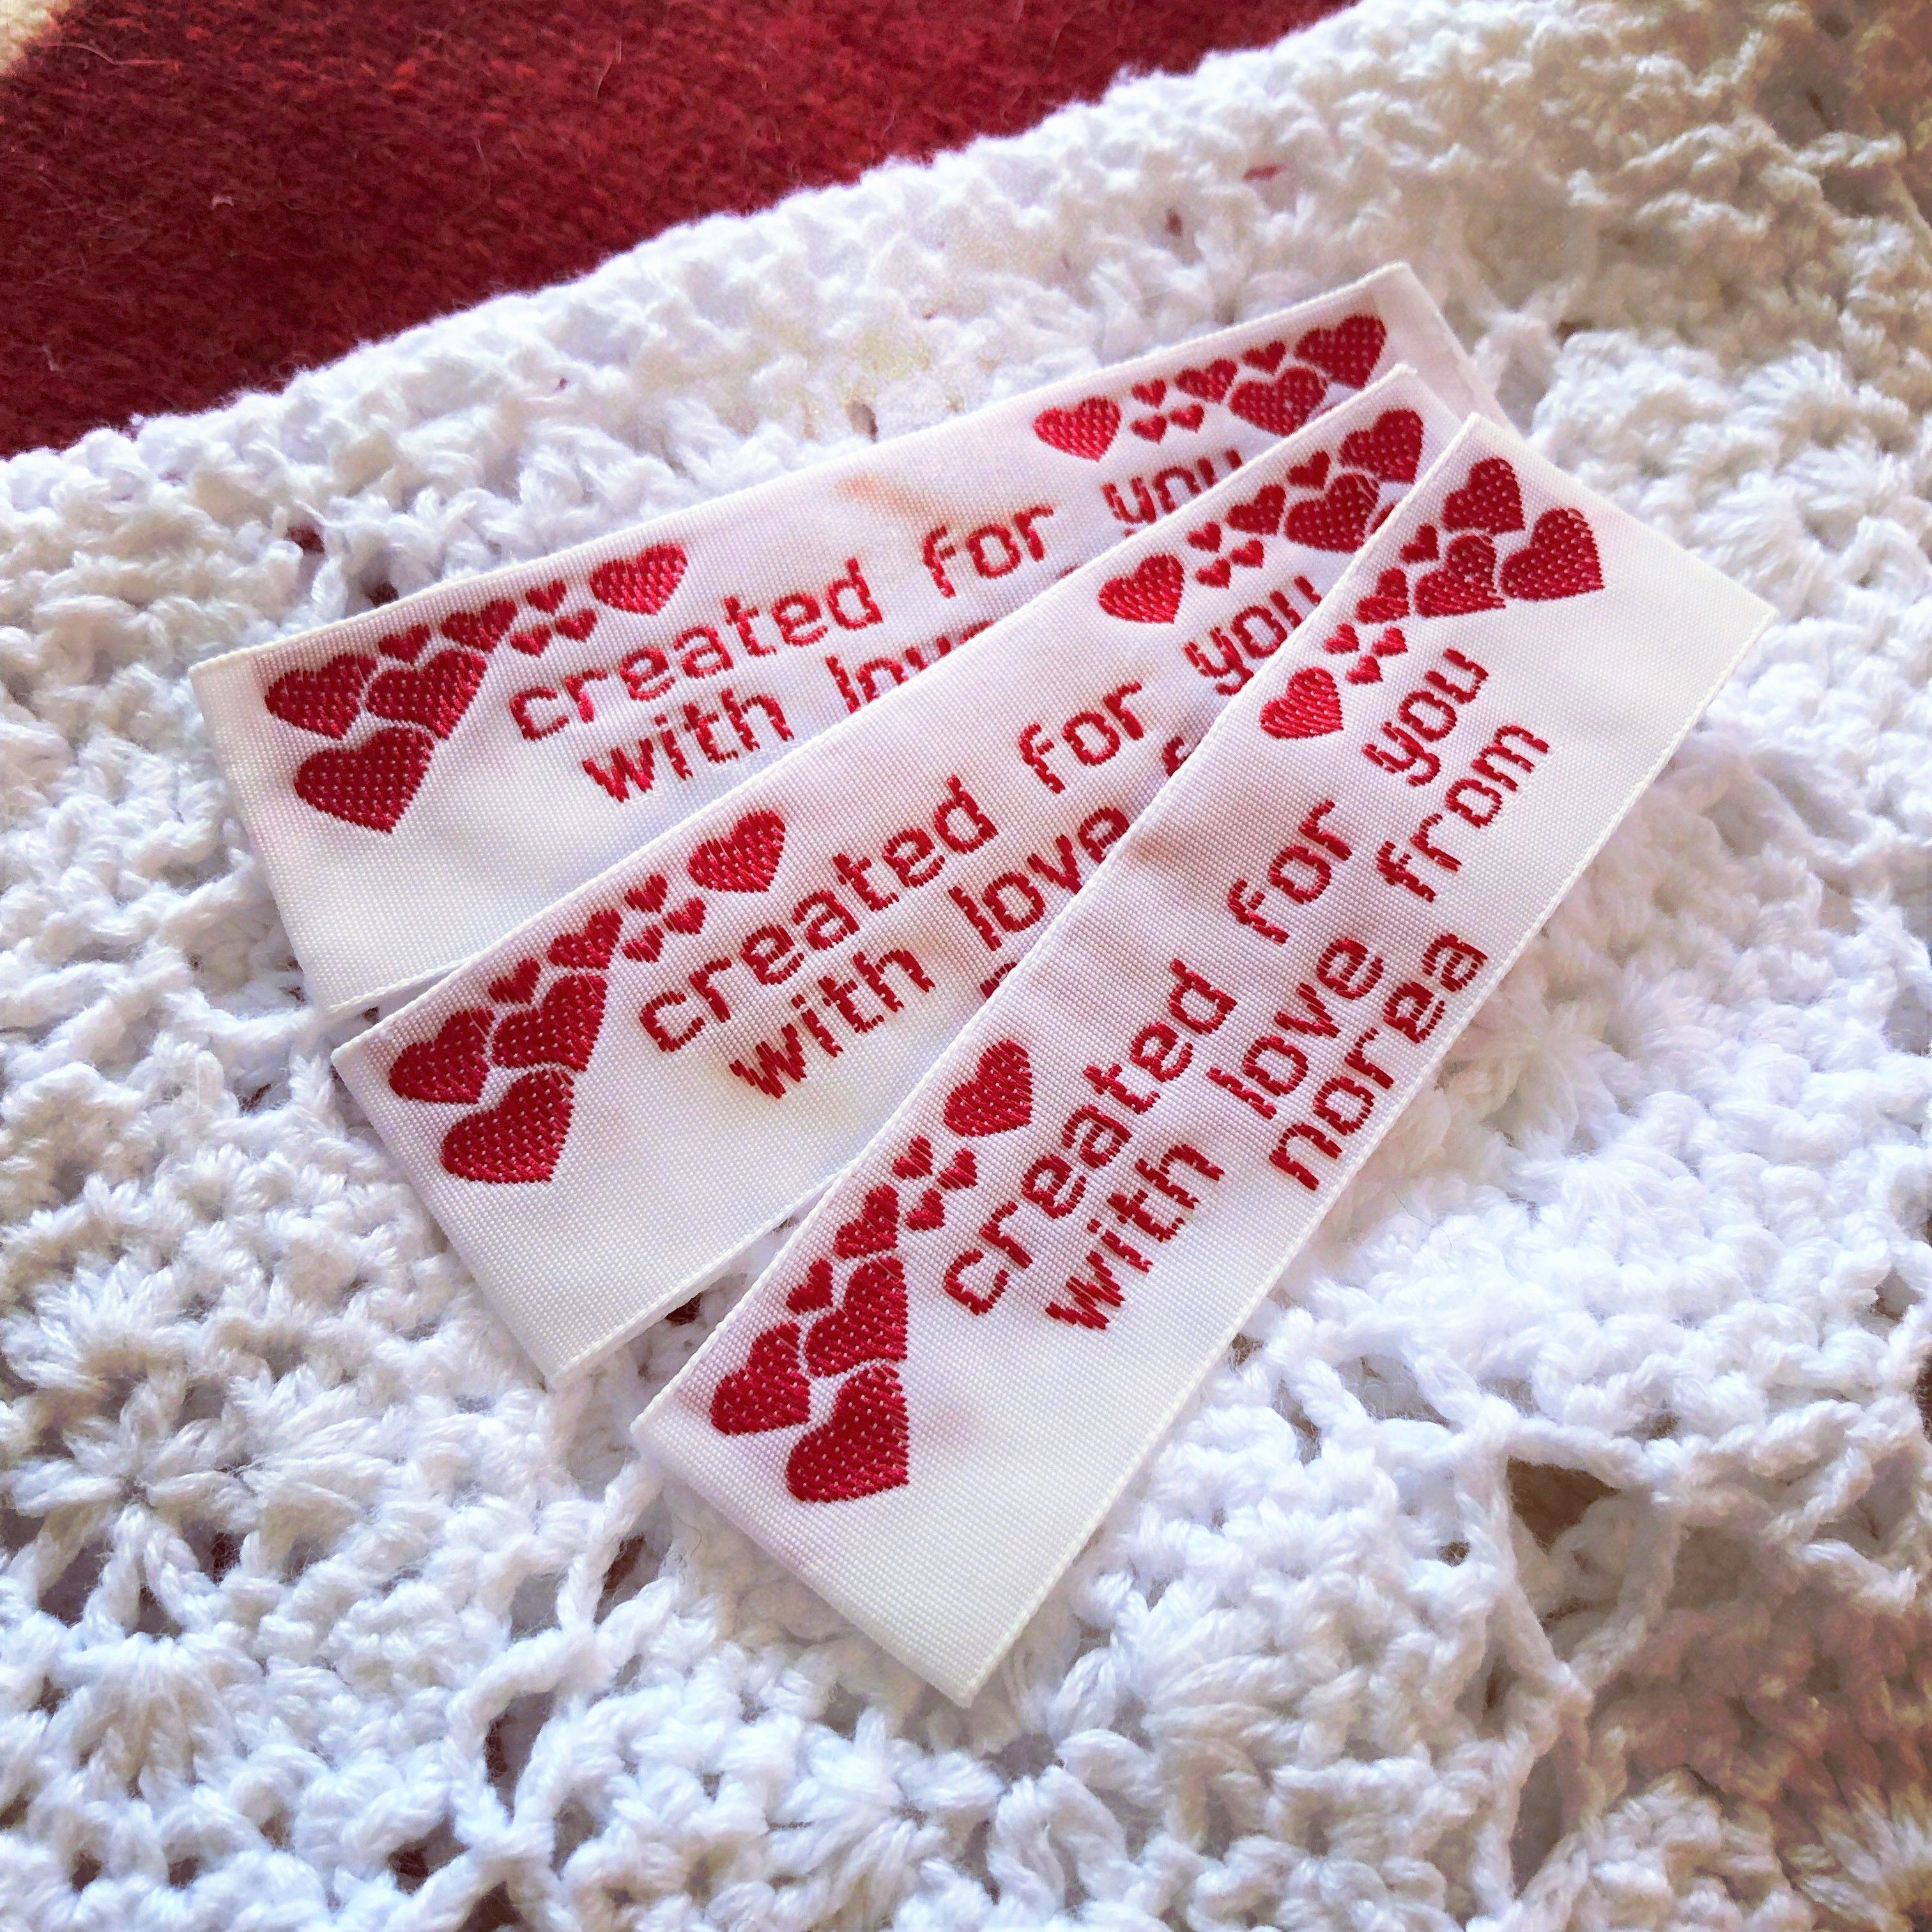 Handmade With Love Create Your Own Custom Fabric Sewing Labels With A Sweet Sentiment Lots Of Colors And Styles To Sewing Labels Sewing Fabric Custom Fabric